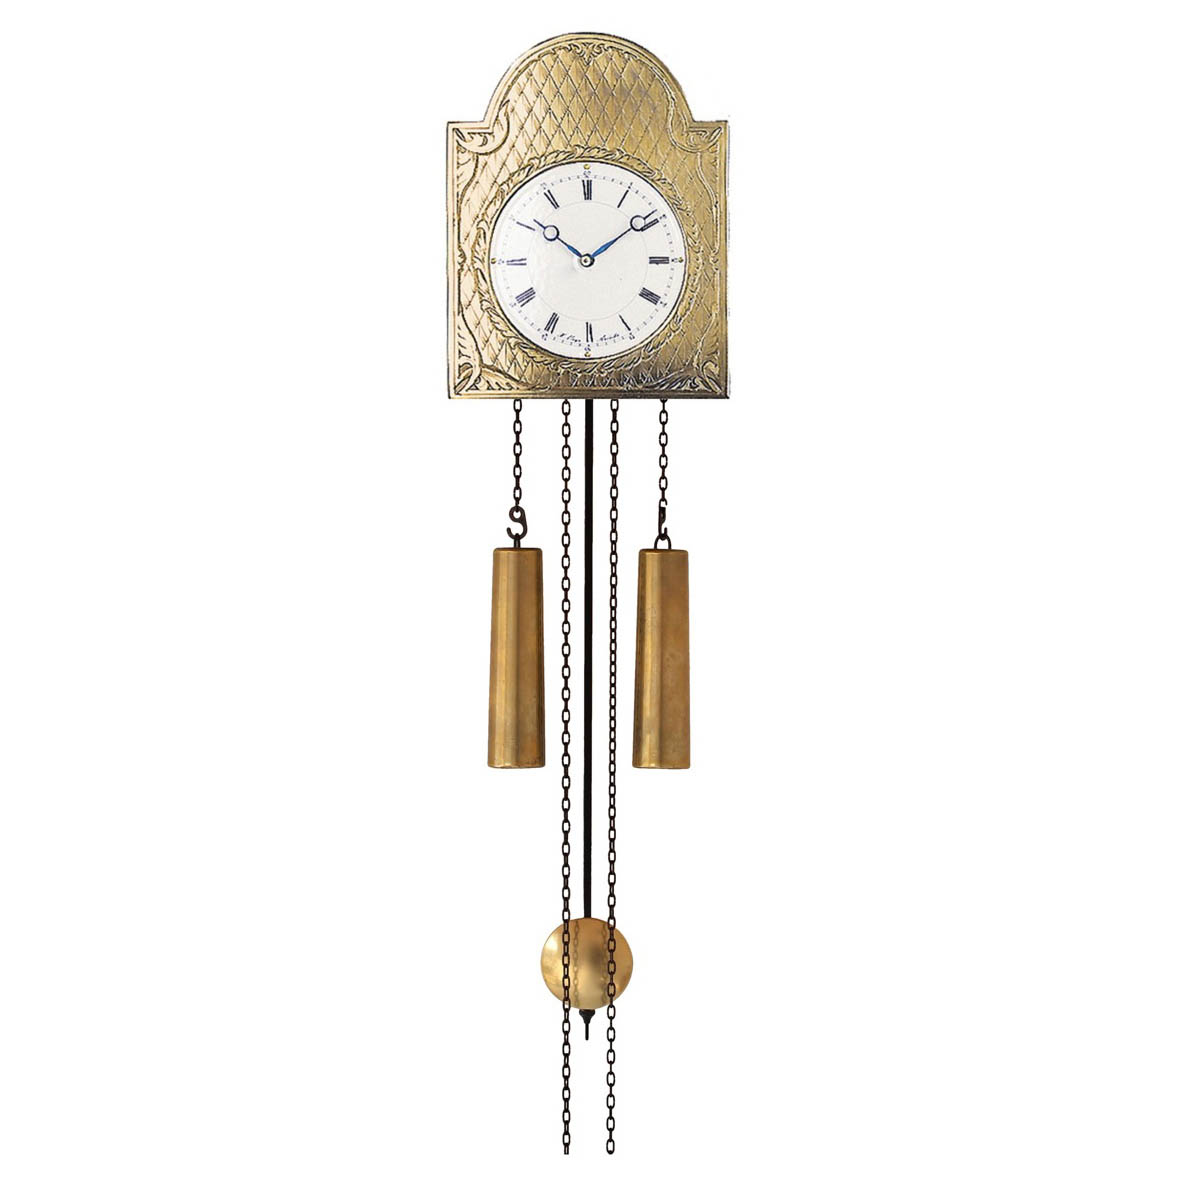 WU1150 Traditional Wall Clock